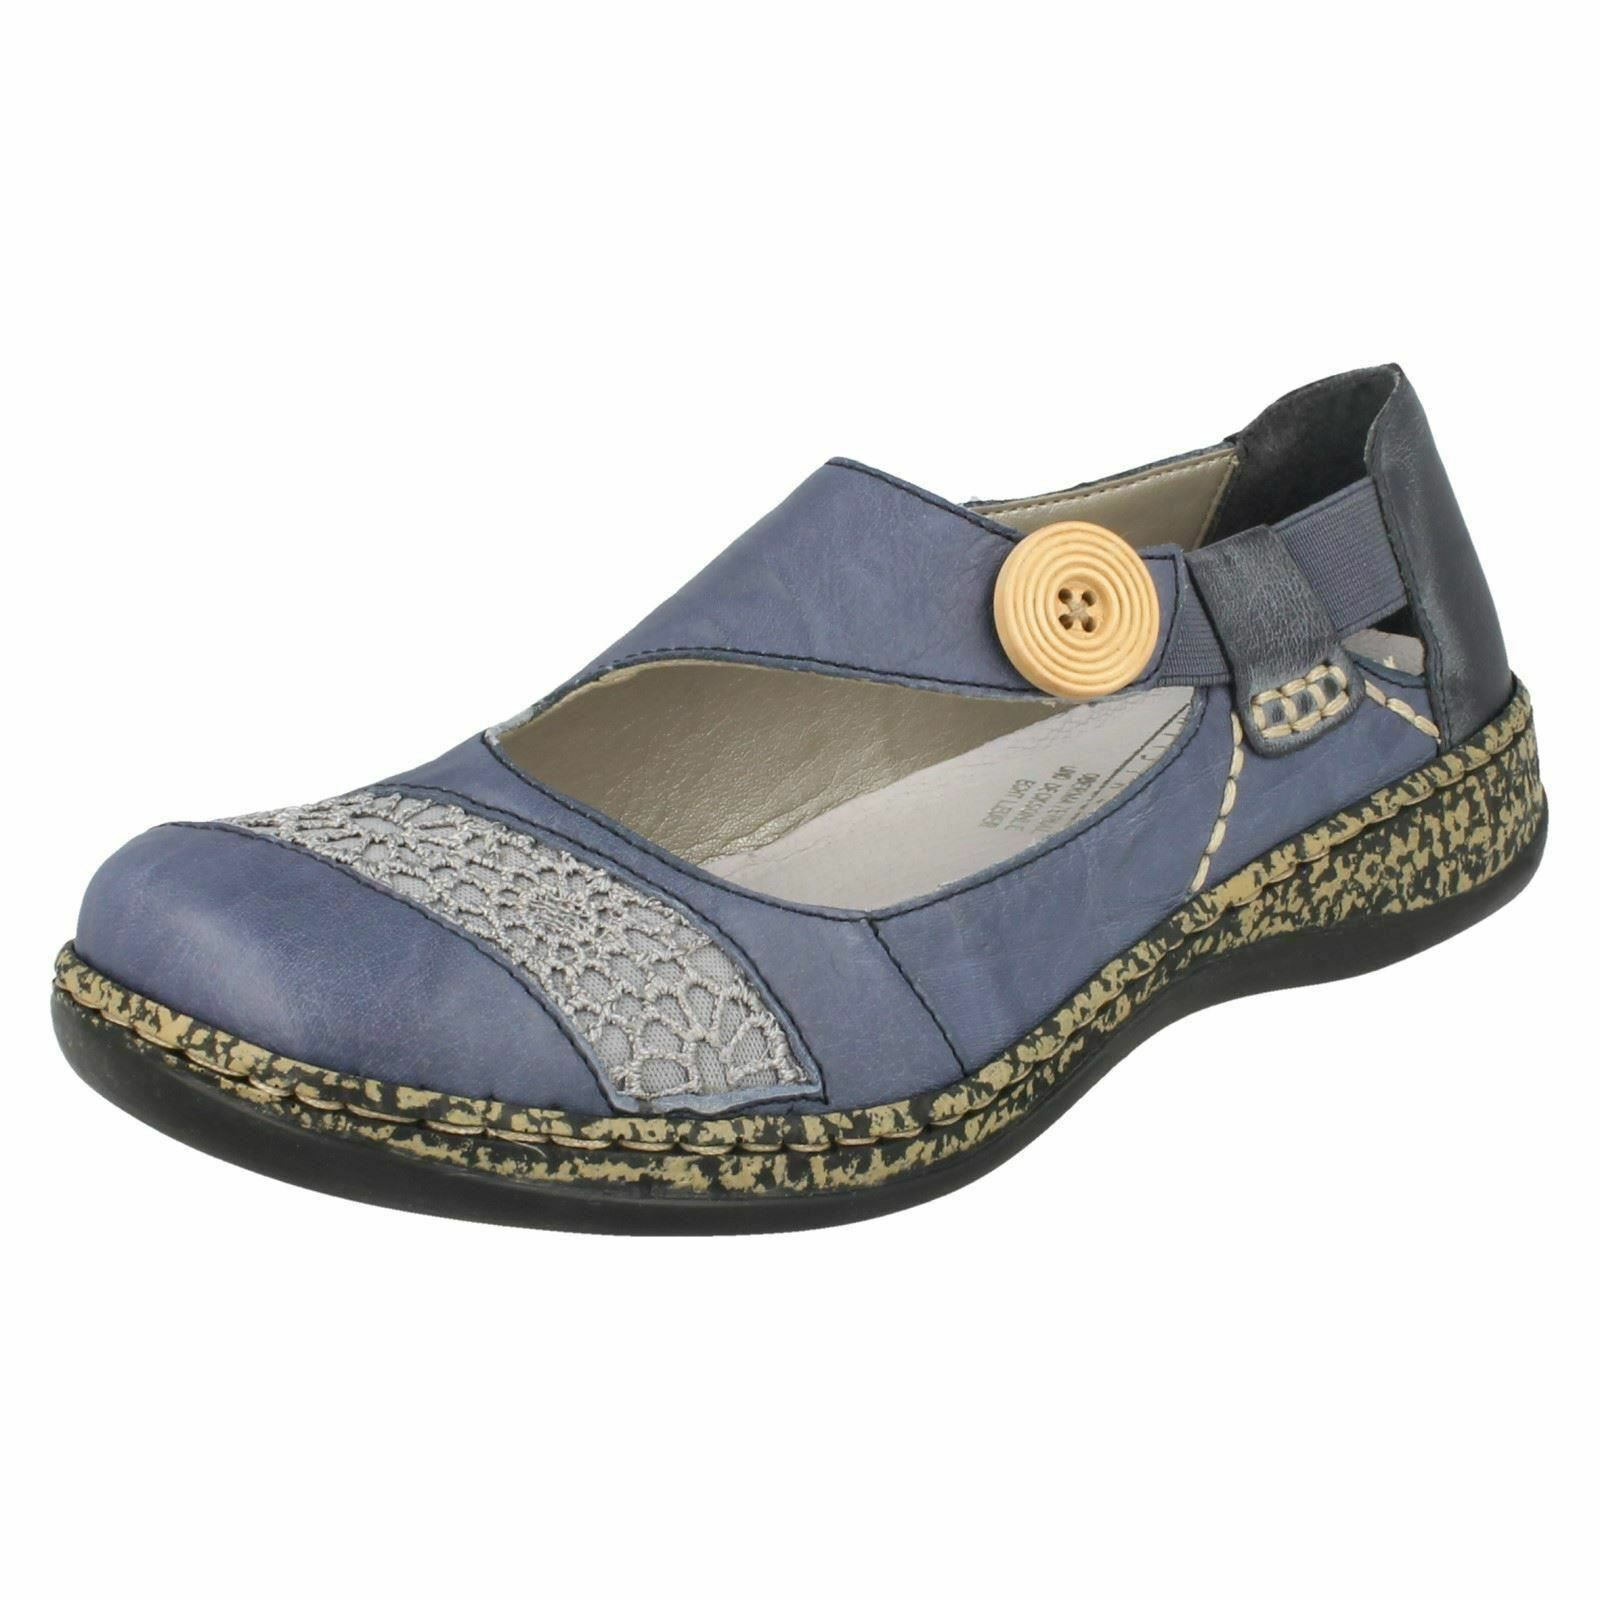 Ladies Rieker 46324 Casual bluee Slip On Leather shoes